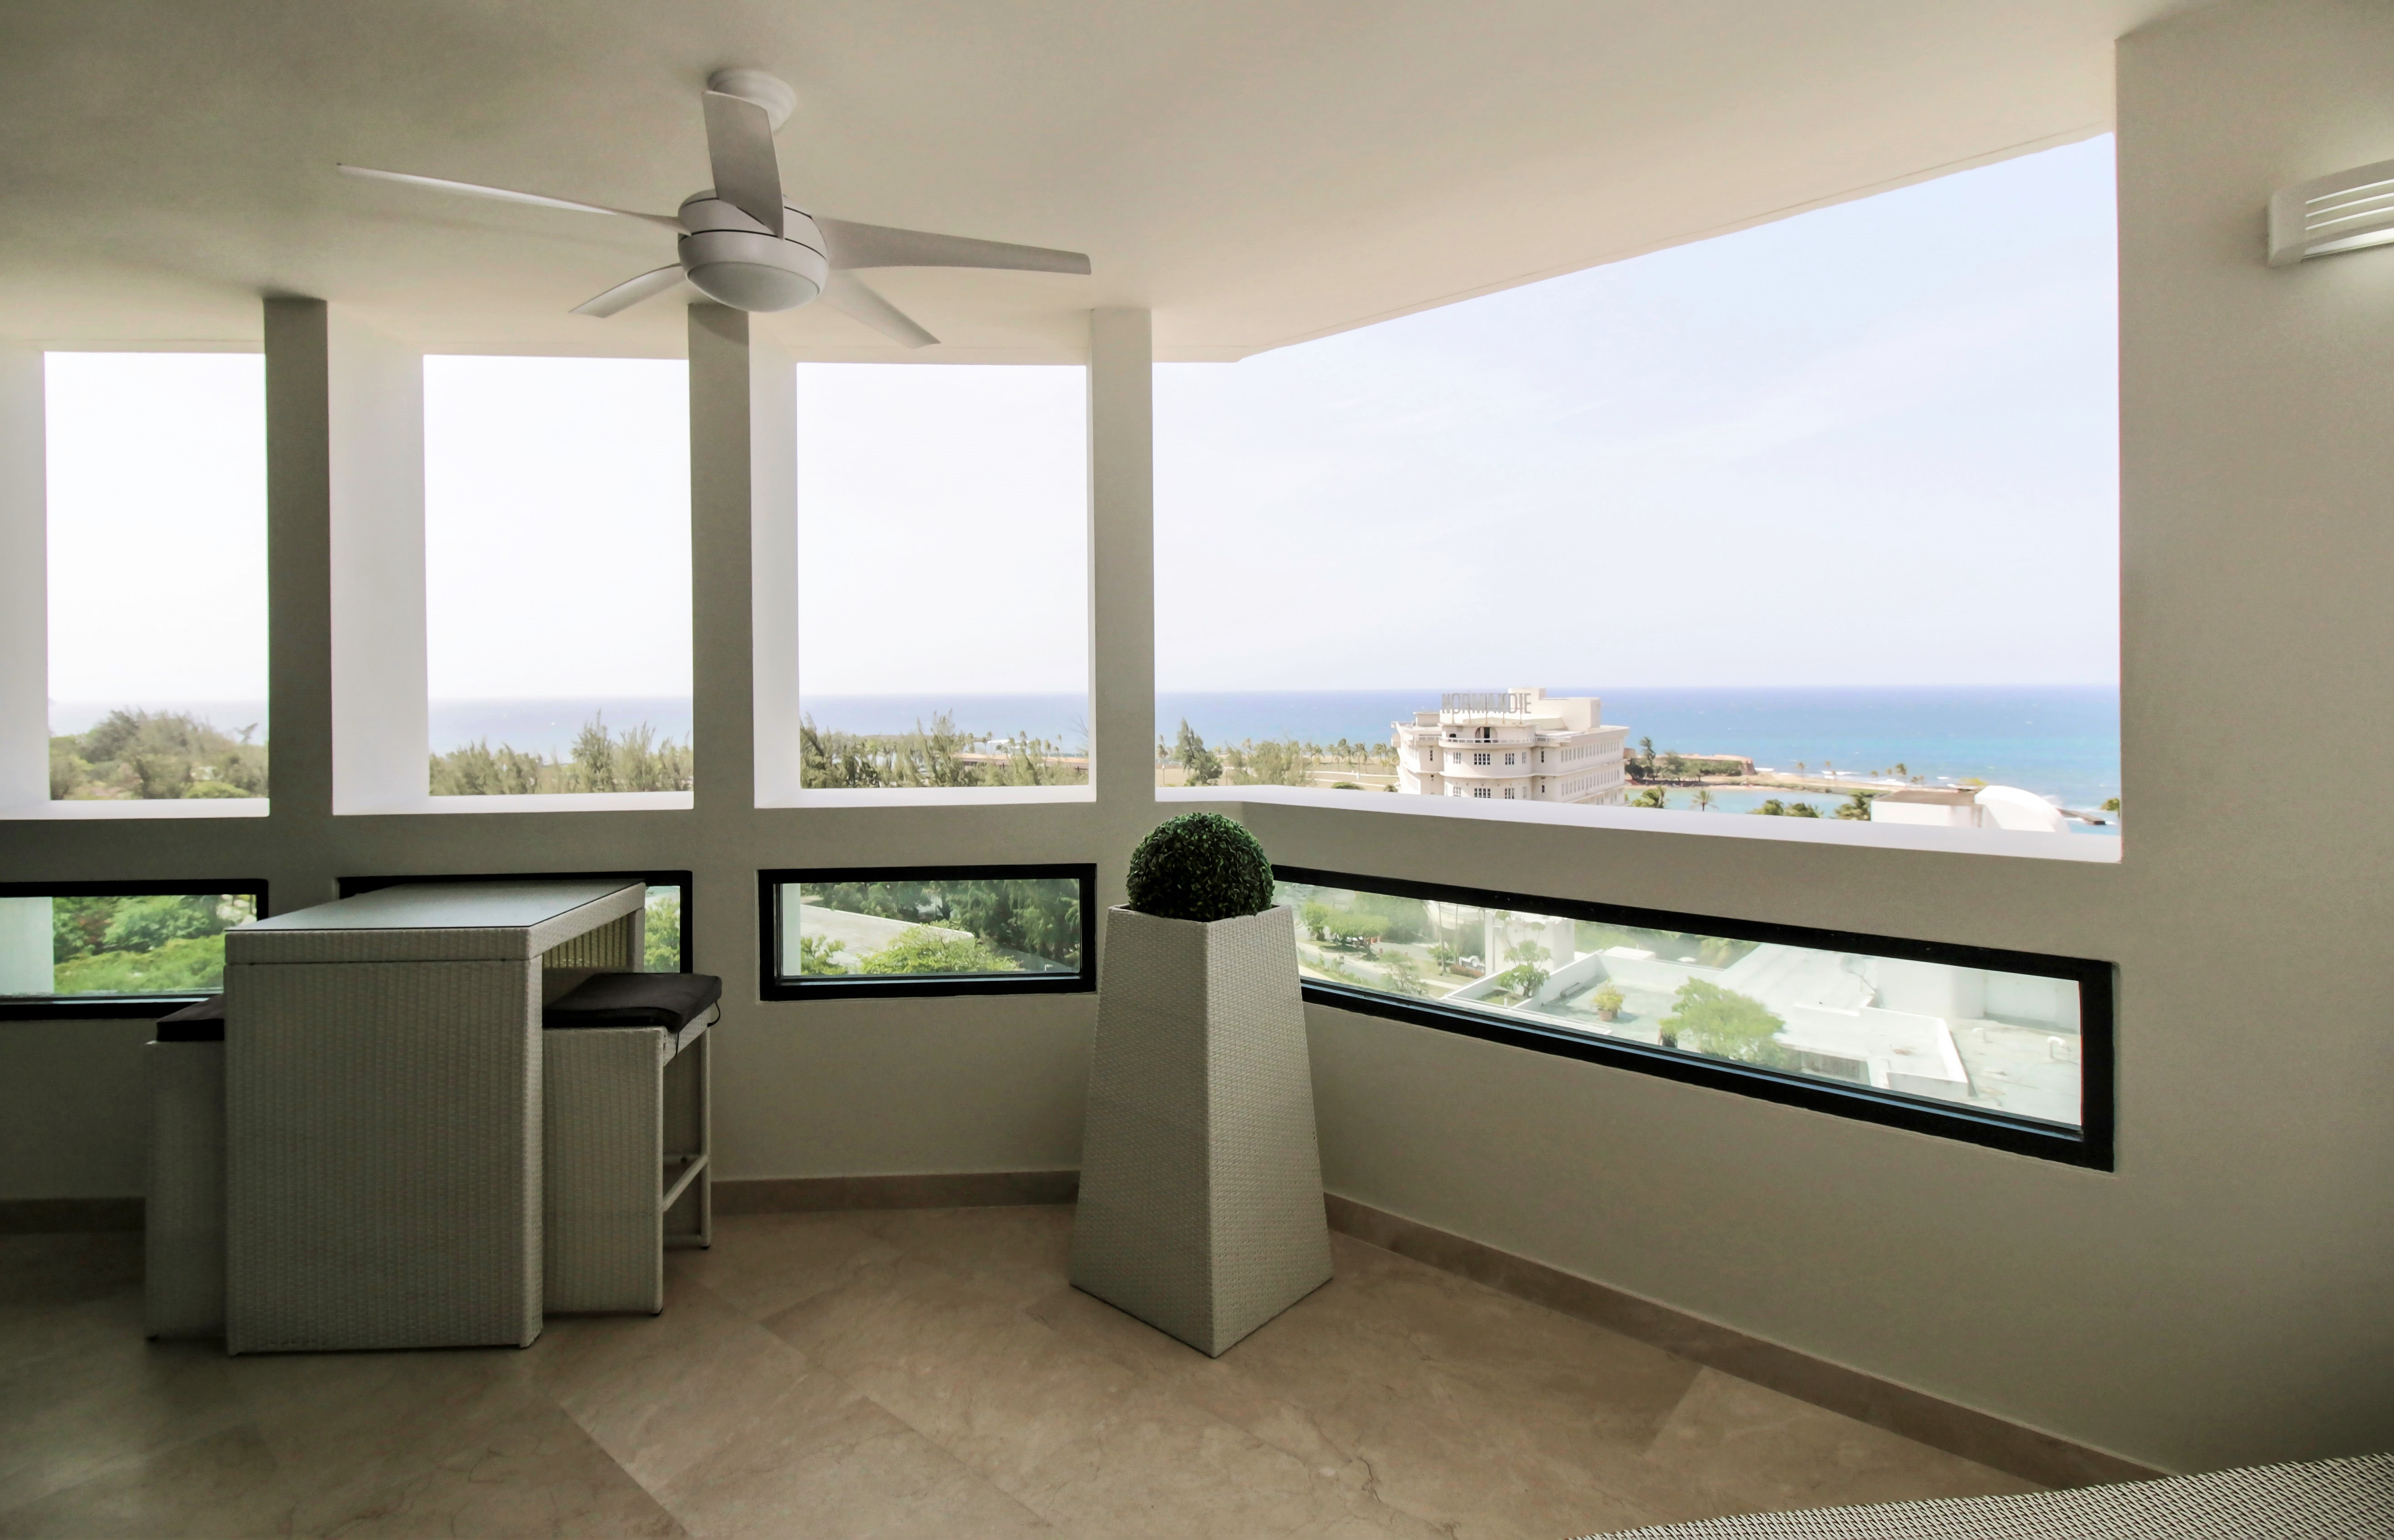 Additional photo for property listing at Soaring 12th Floor Ocean Views at Caribe Plaza 37 Avenida Muñoz Rivera Apt 1201 San Juan, Puerto Rico 00901 Puerto Rico